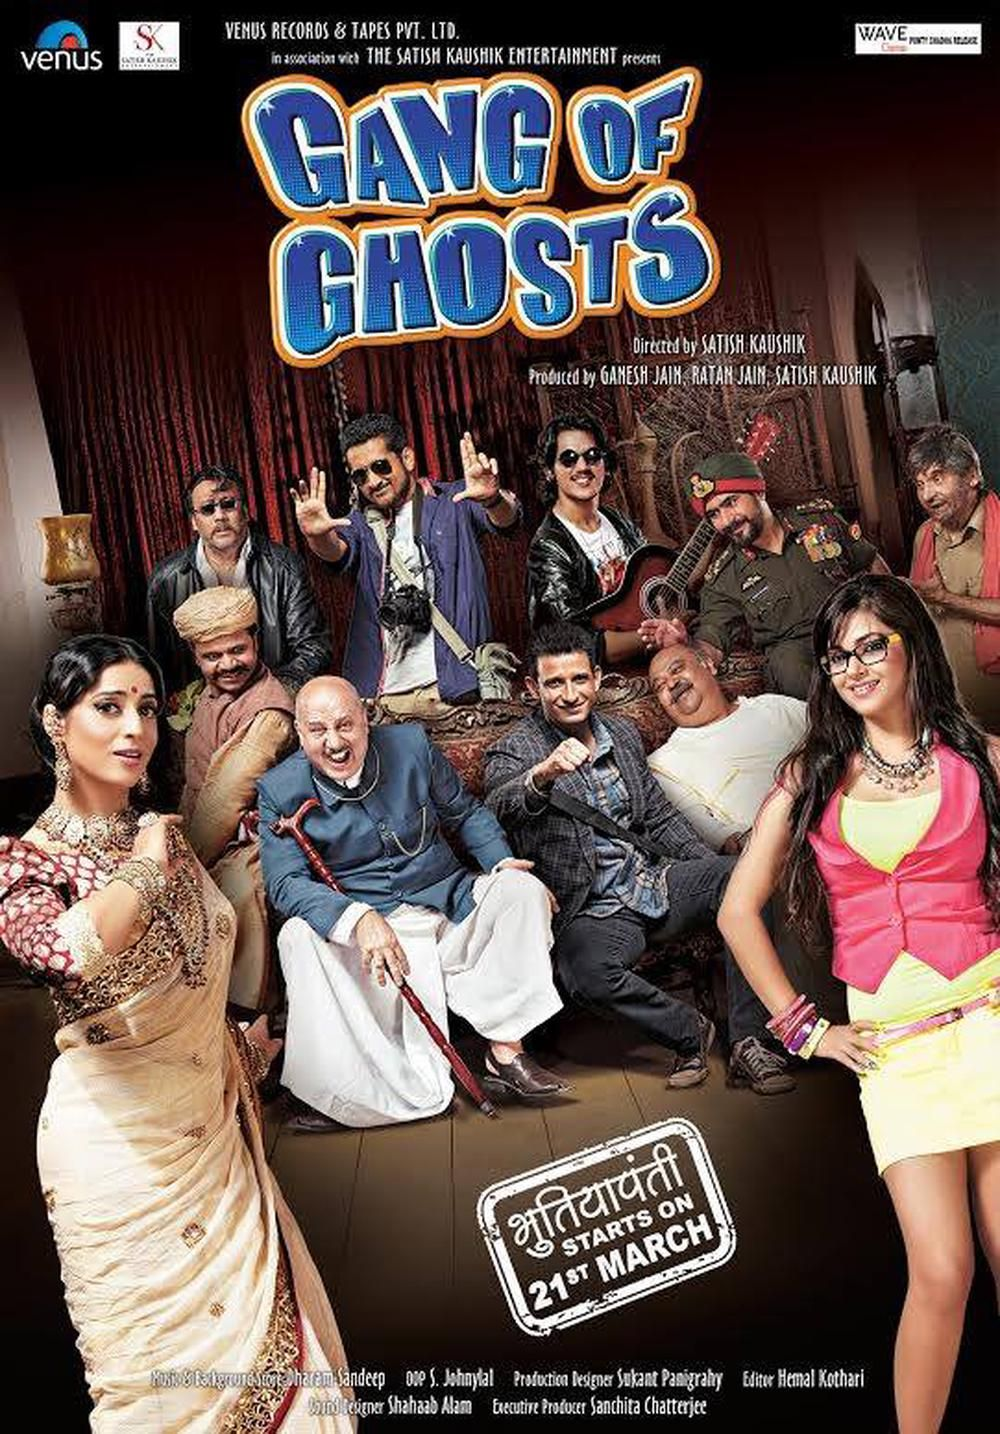 Movie: Gang of Ghosts. Release Date: 21st March, 2014. #Comedy